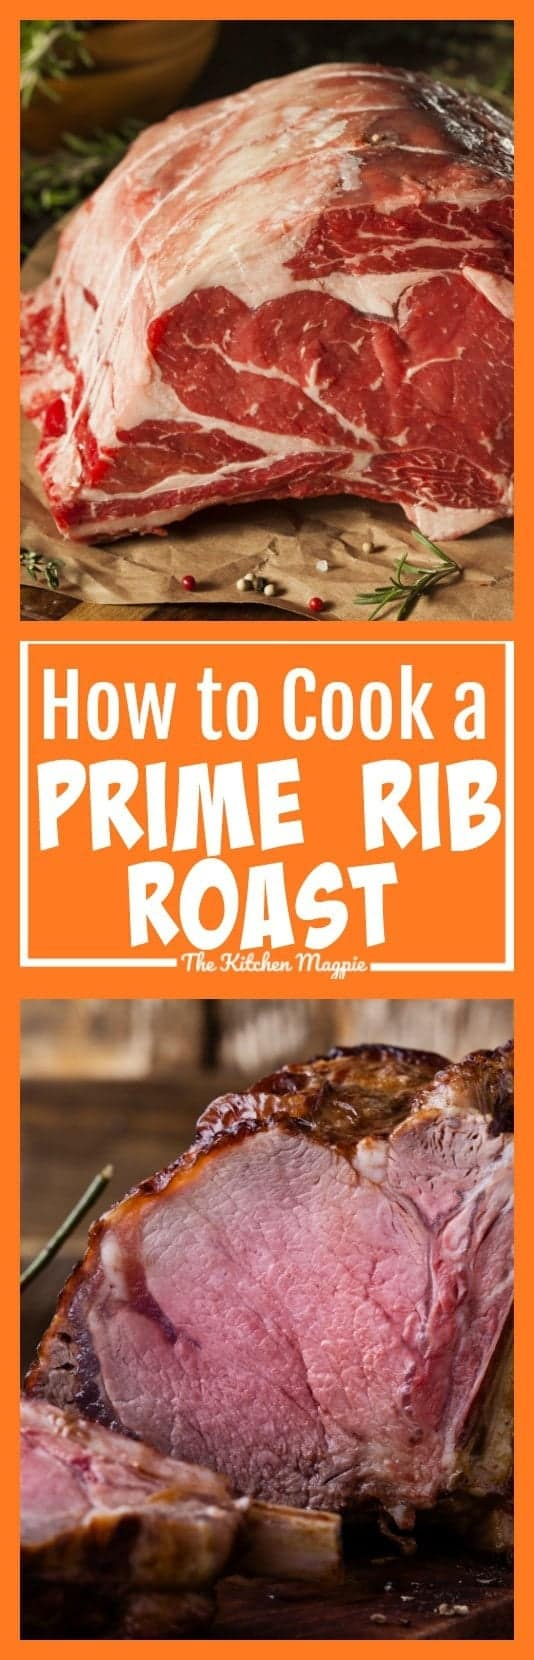 Nothing is better than a prime rib roast! This recipe gives you easy instructions step-by-step on How To Cook a Prime Rib Roast that will wow your family! #roastbeef #recipe #primerib #cooking